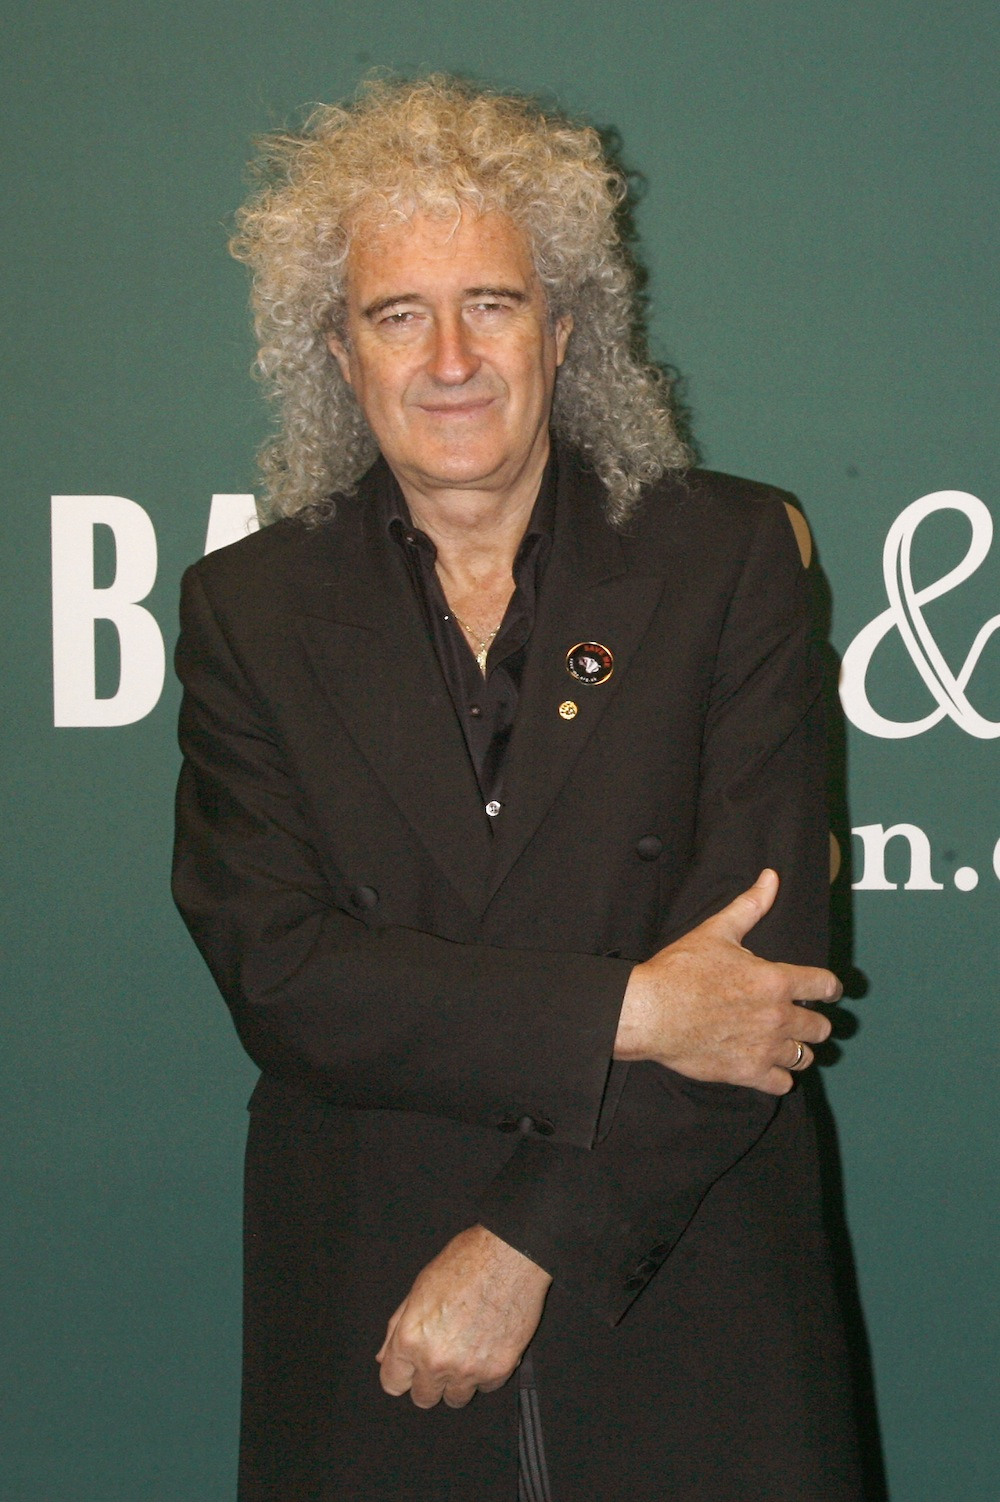 brian-may-cancer-scare